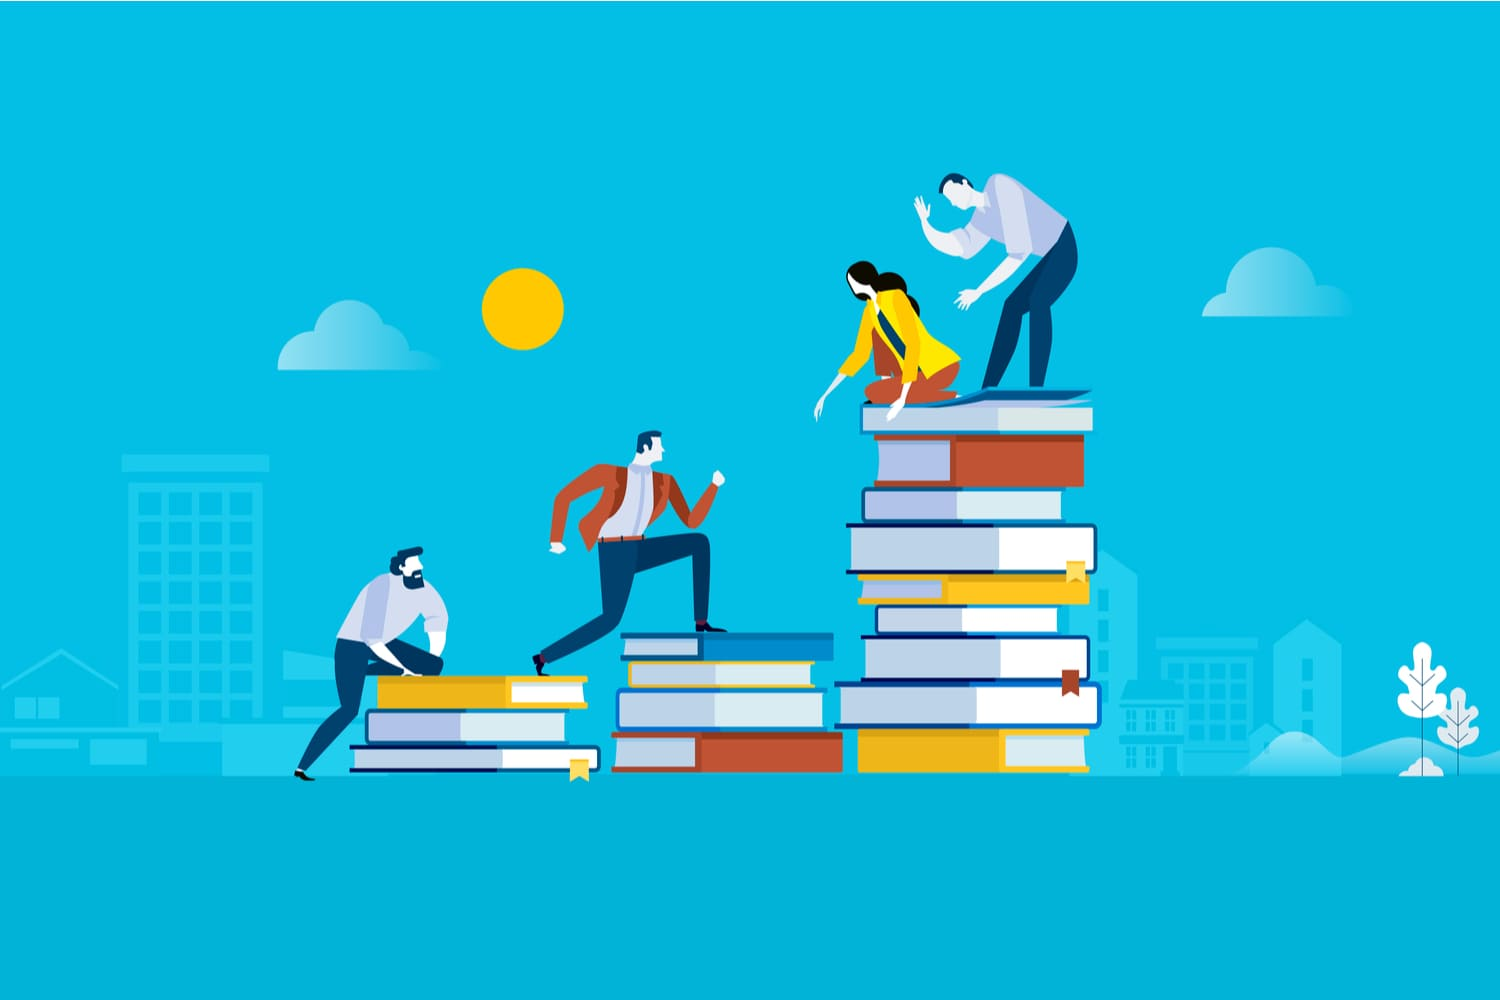 Flat design style web banner for the levels of education